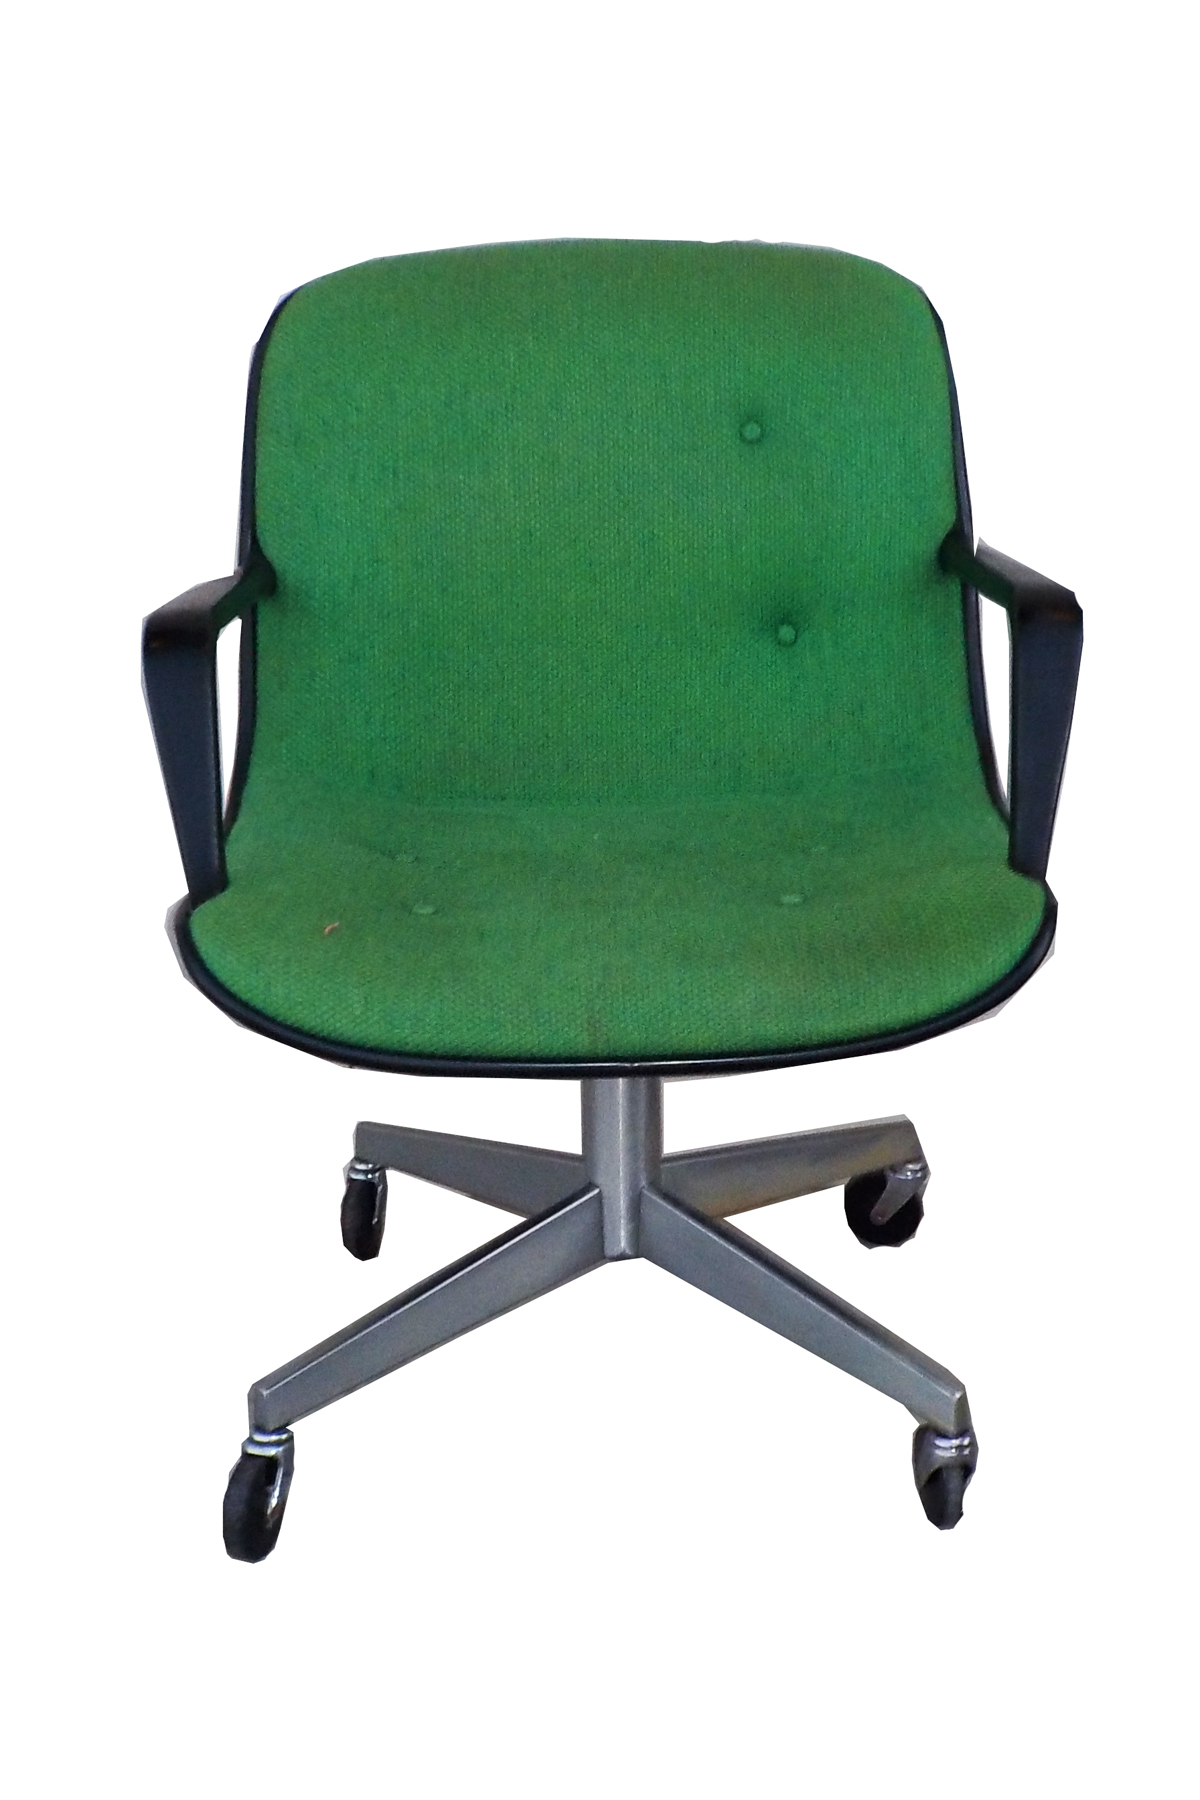 MidCentury Modern SteelCase Vintage Green Office Chair Chairish